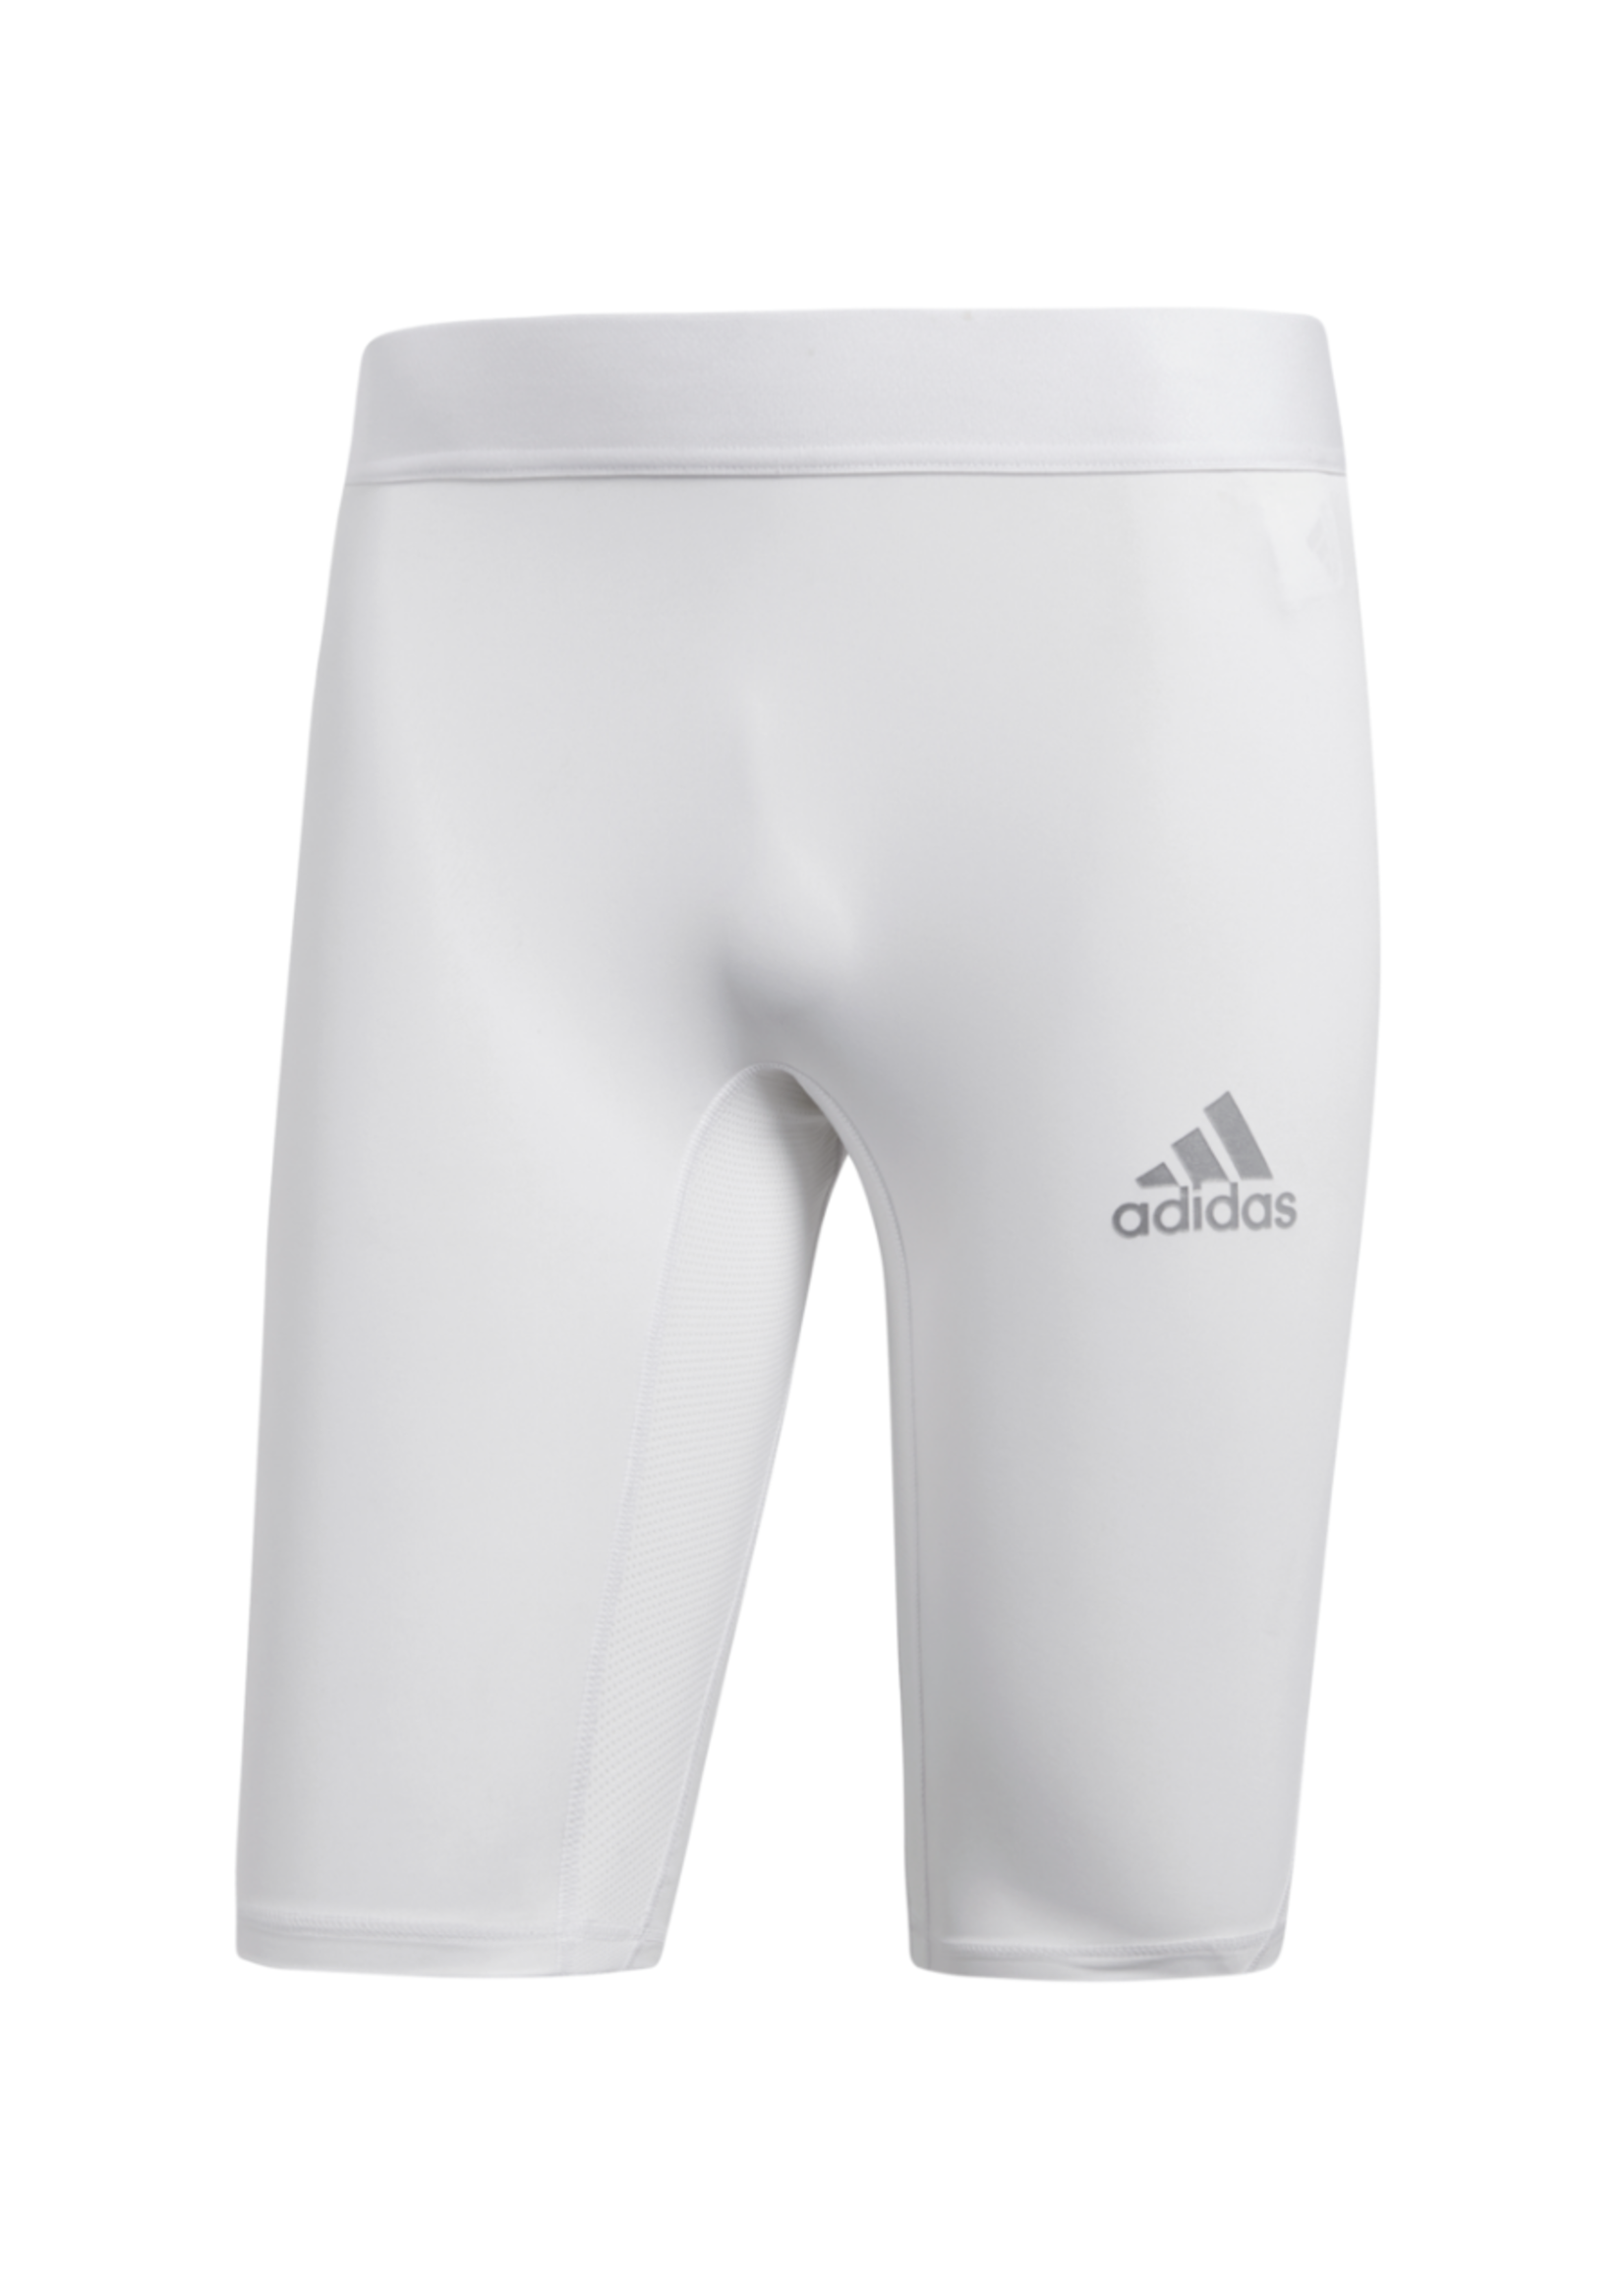 Adidas ADIDAS COMPRESSION SHORT ASK SPRT ST M